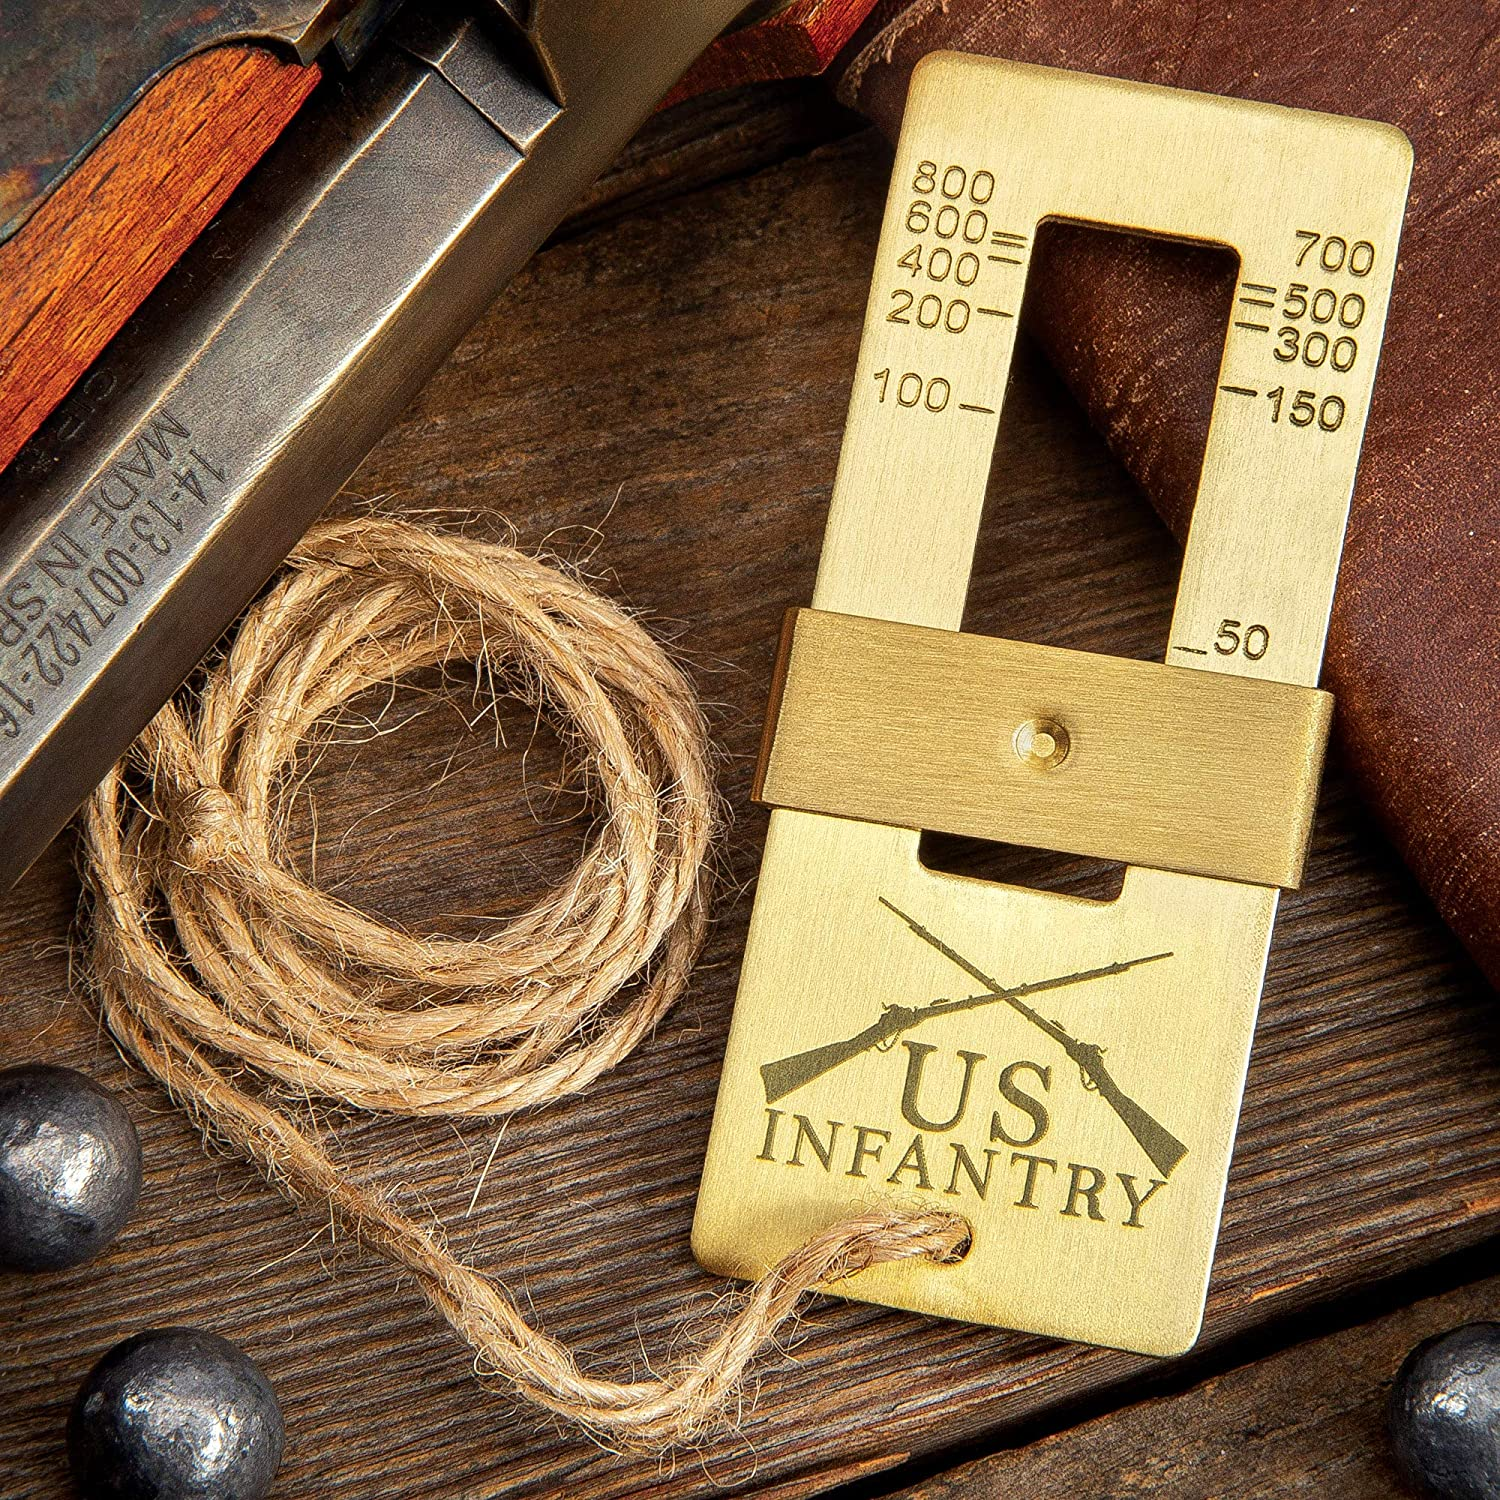 "Trailblazer 19TH Century Range Finder - Solid Brass Construction, Exact Length Twine String - Dimensions 3"" x 1 1/4"""